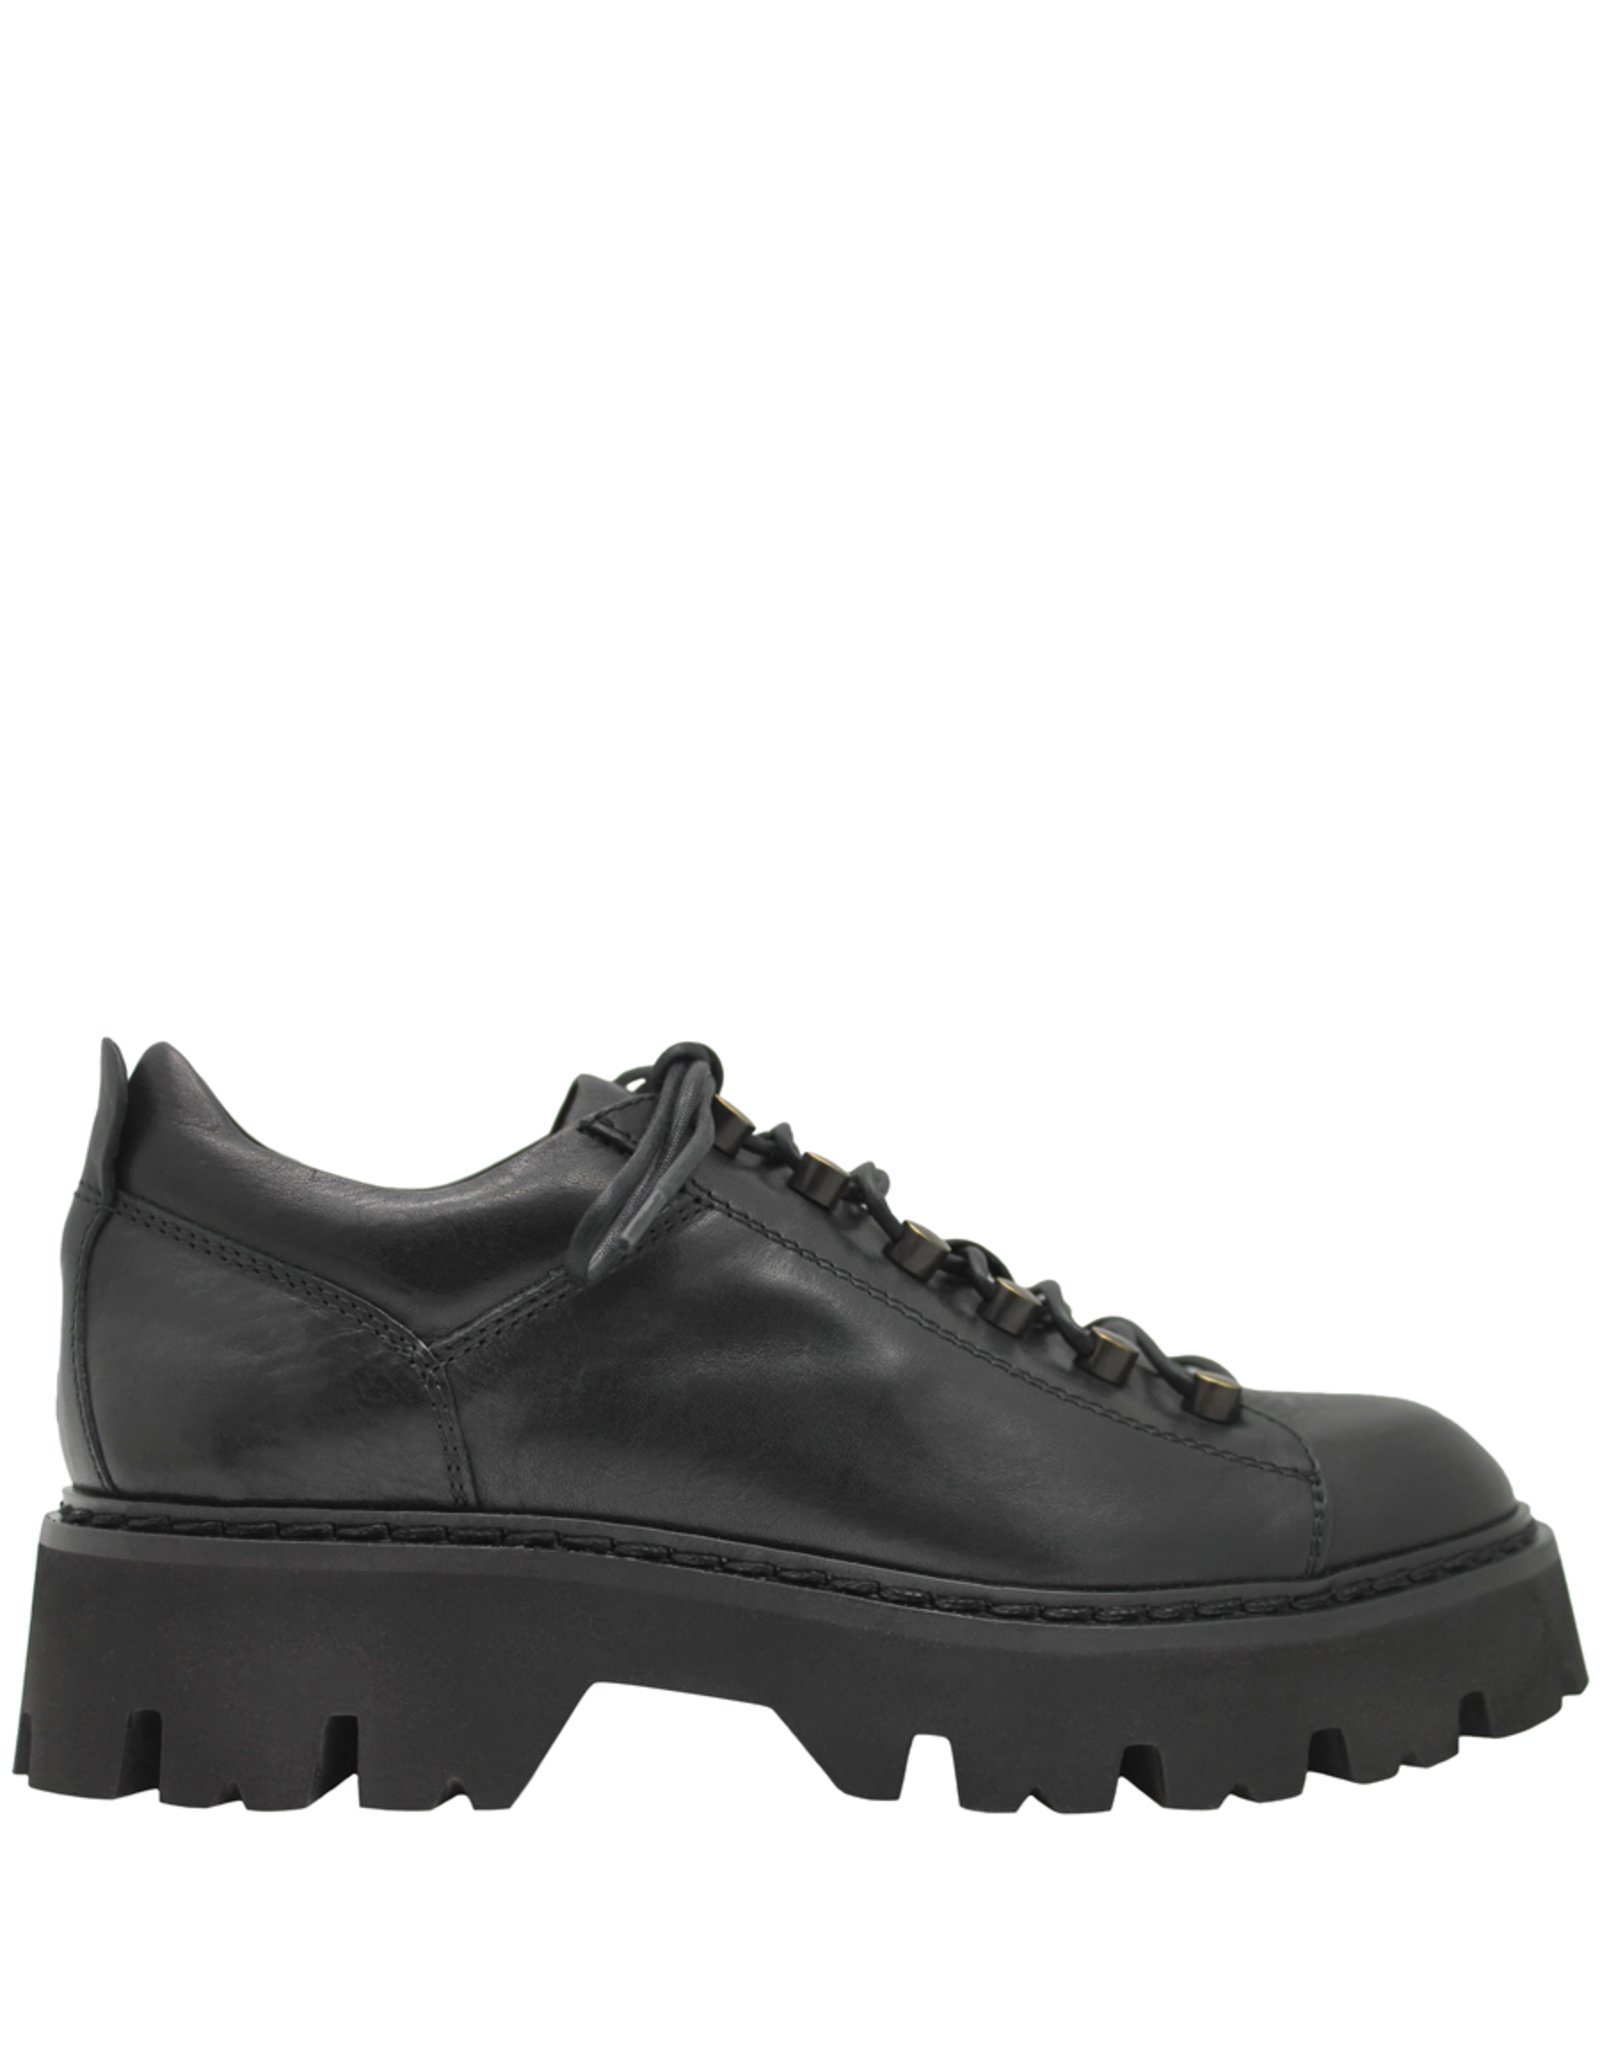 Now Now Black Hiking Shoe Bootie 6544